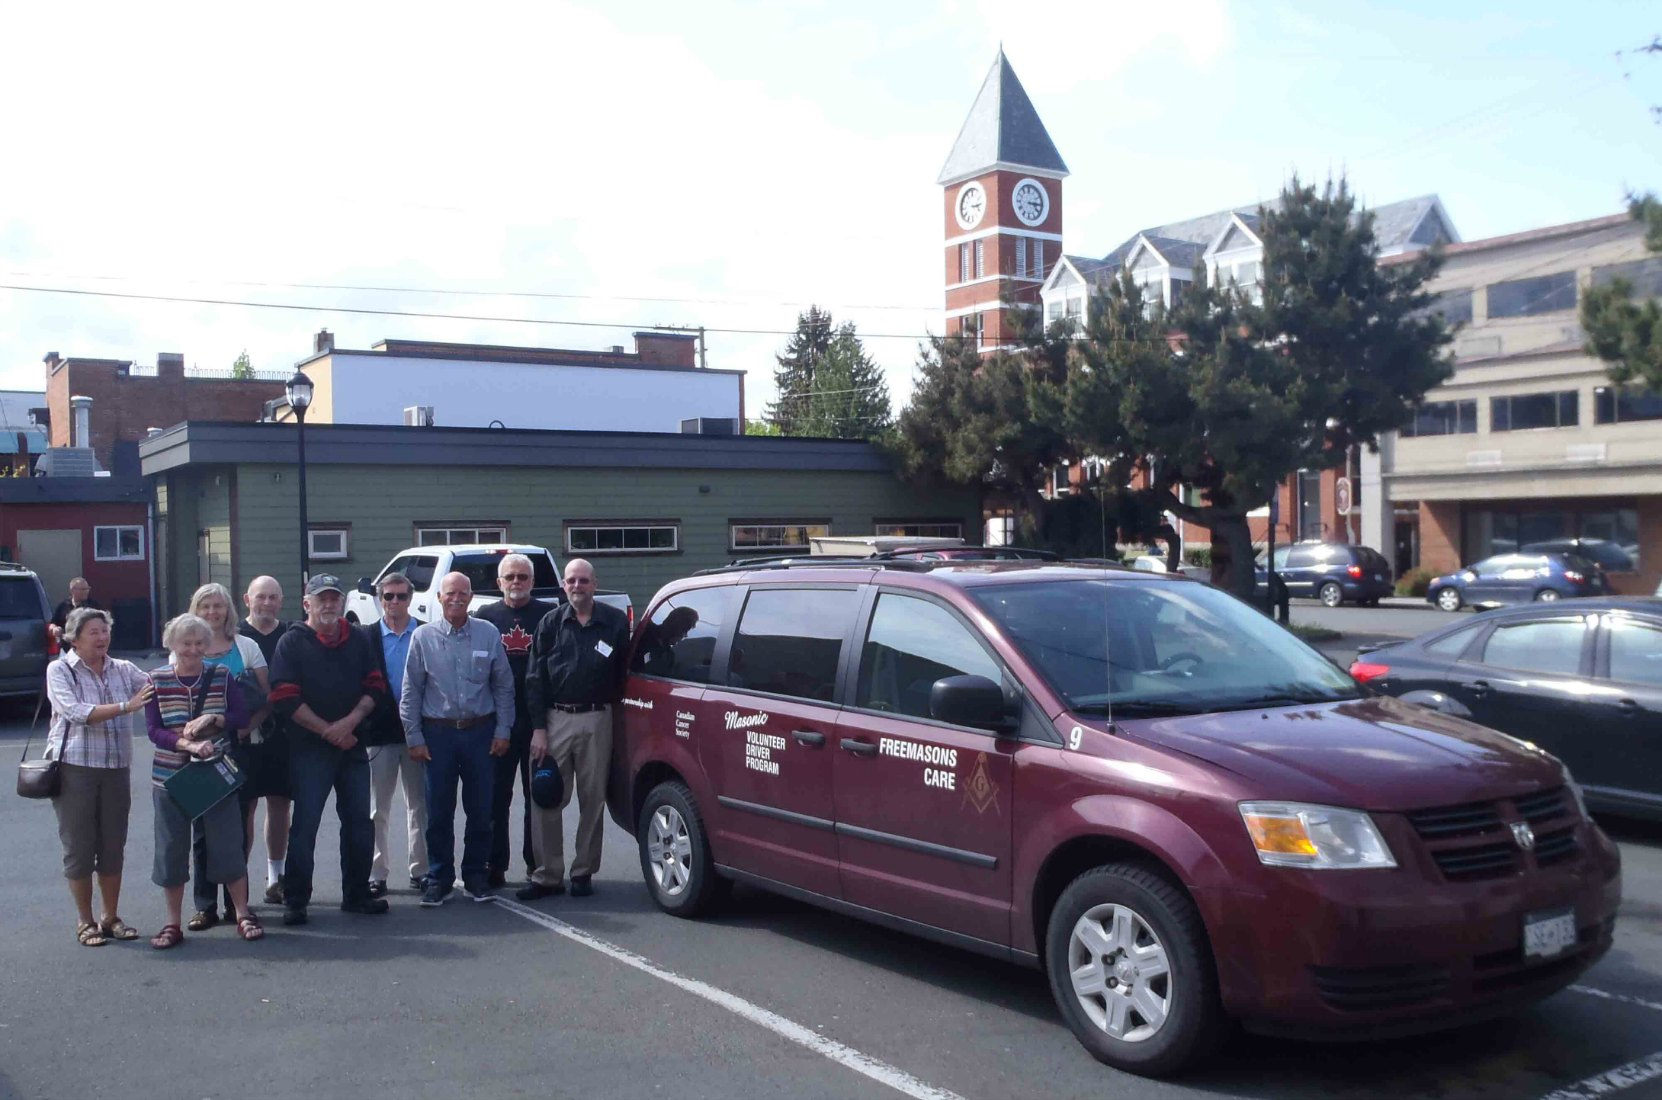 The Cancer Car vehicle now stationed in Duncan with some of the volunteers running the Freemasons Cancer Car Program in the Cowichan Valley.